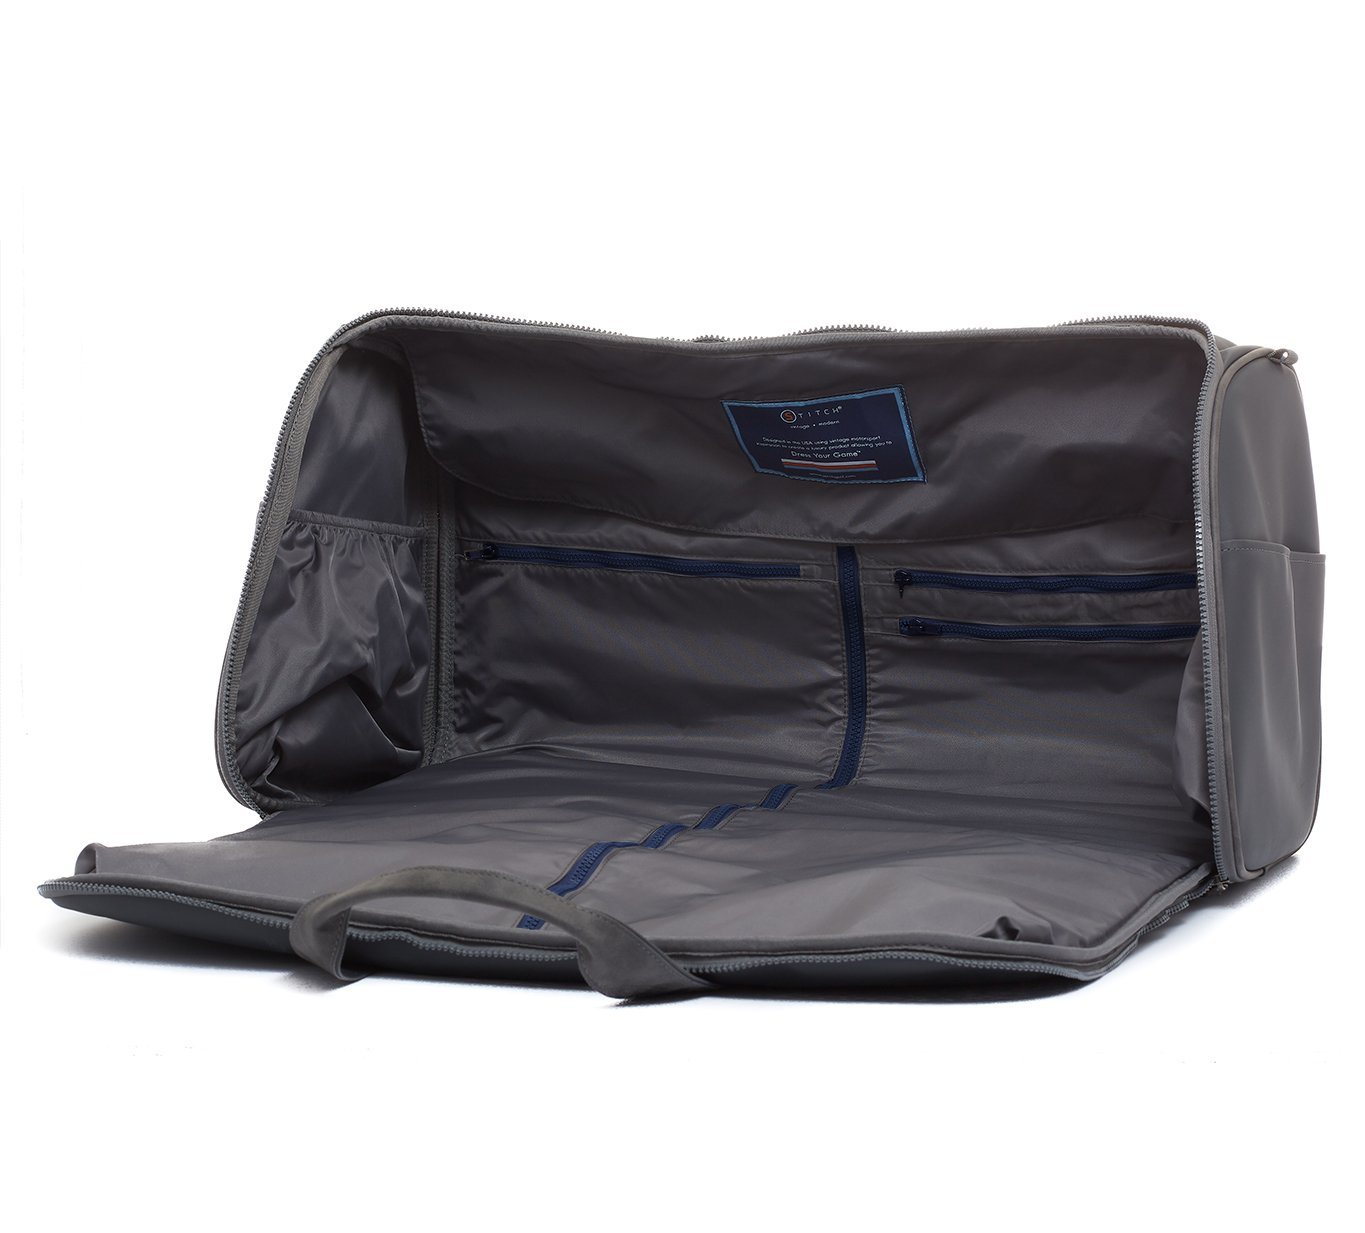 0a4c2c589c49 UGB Garment Bag